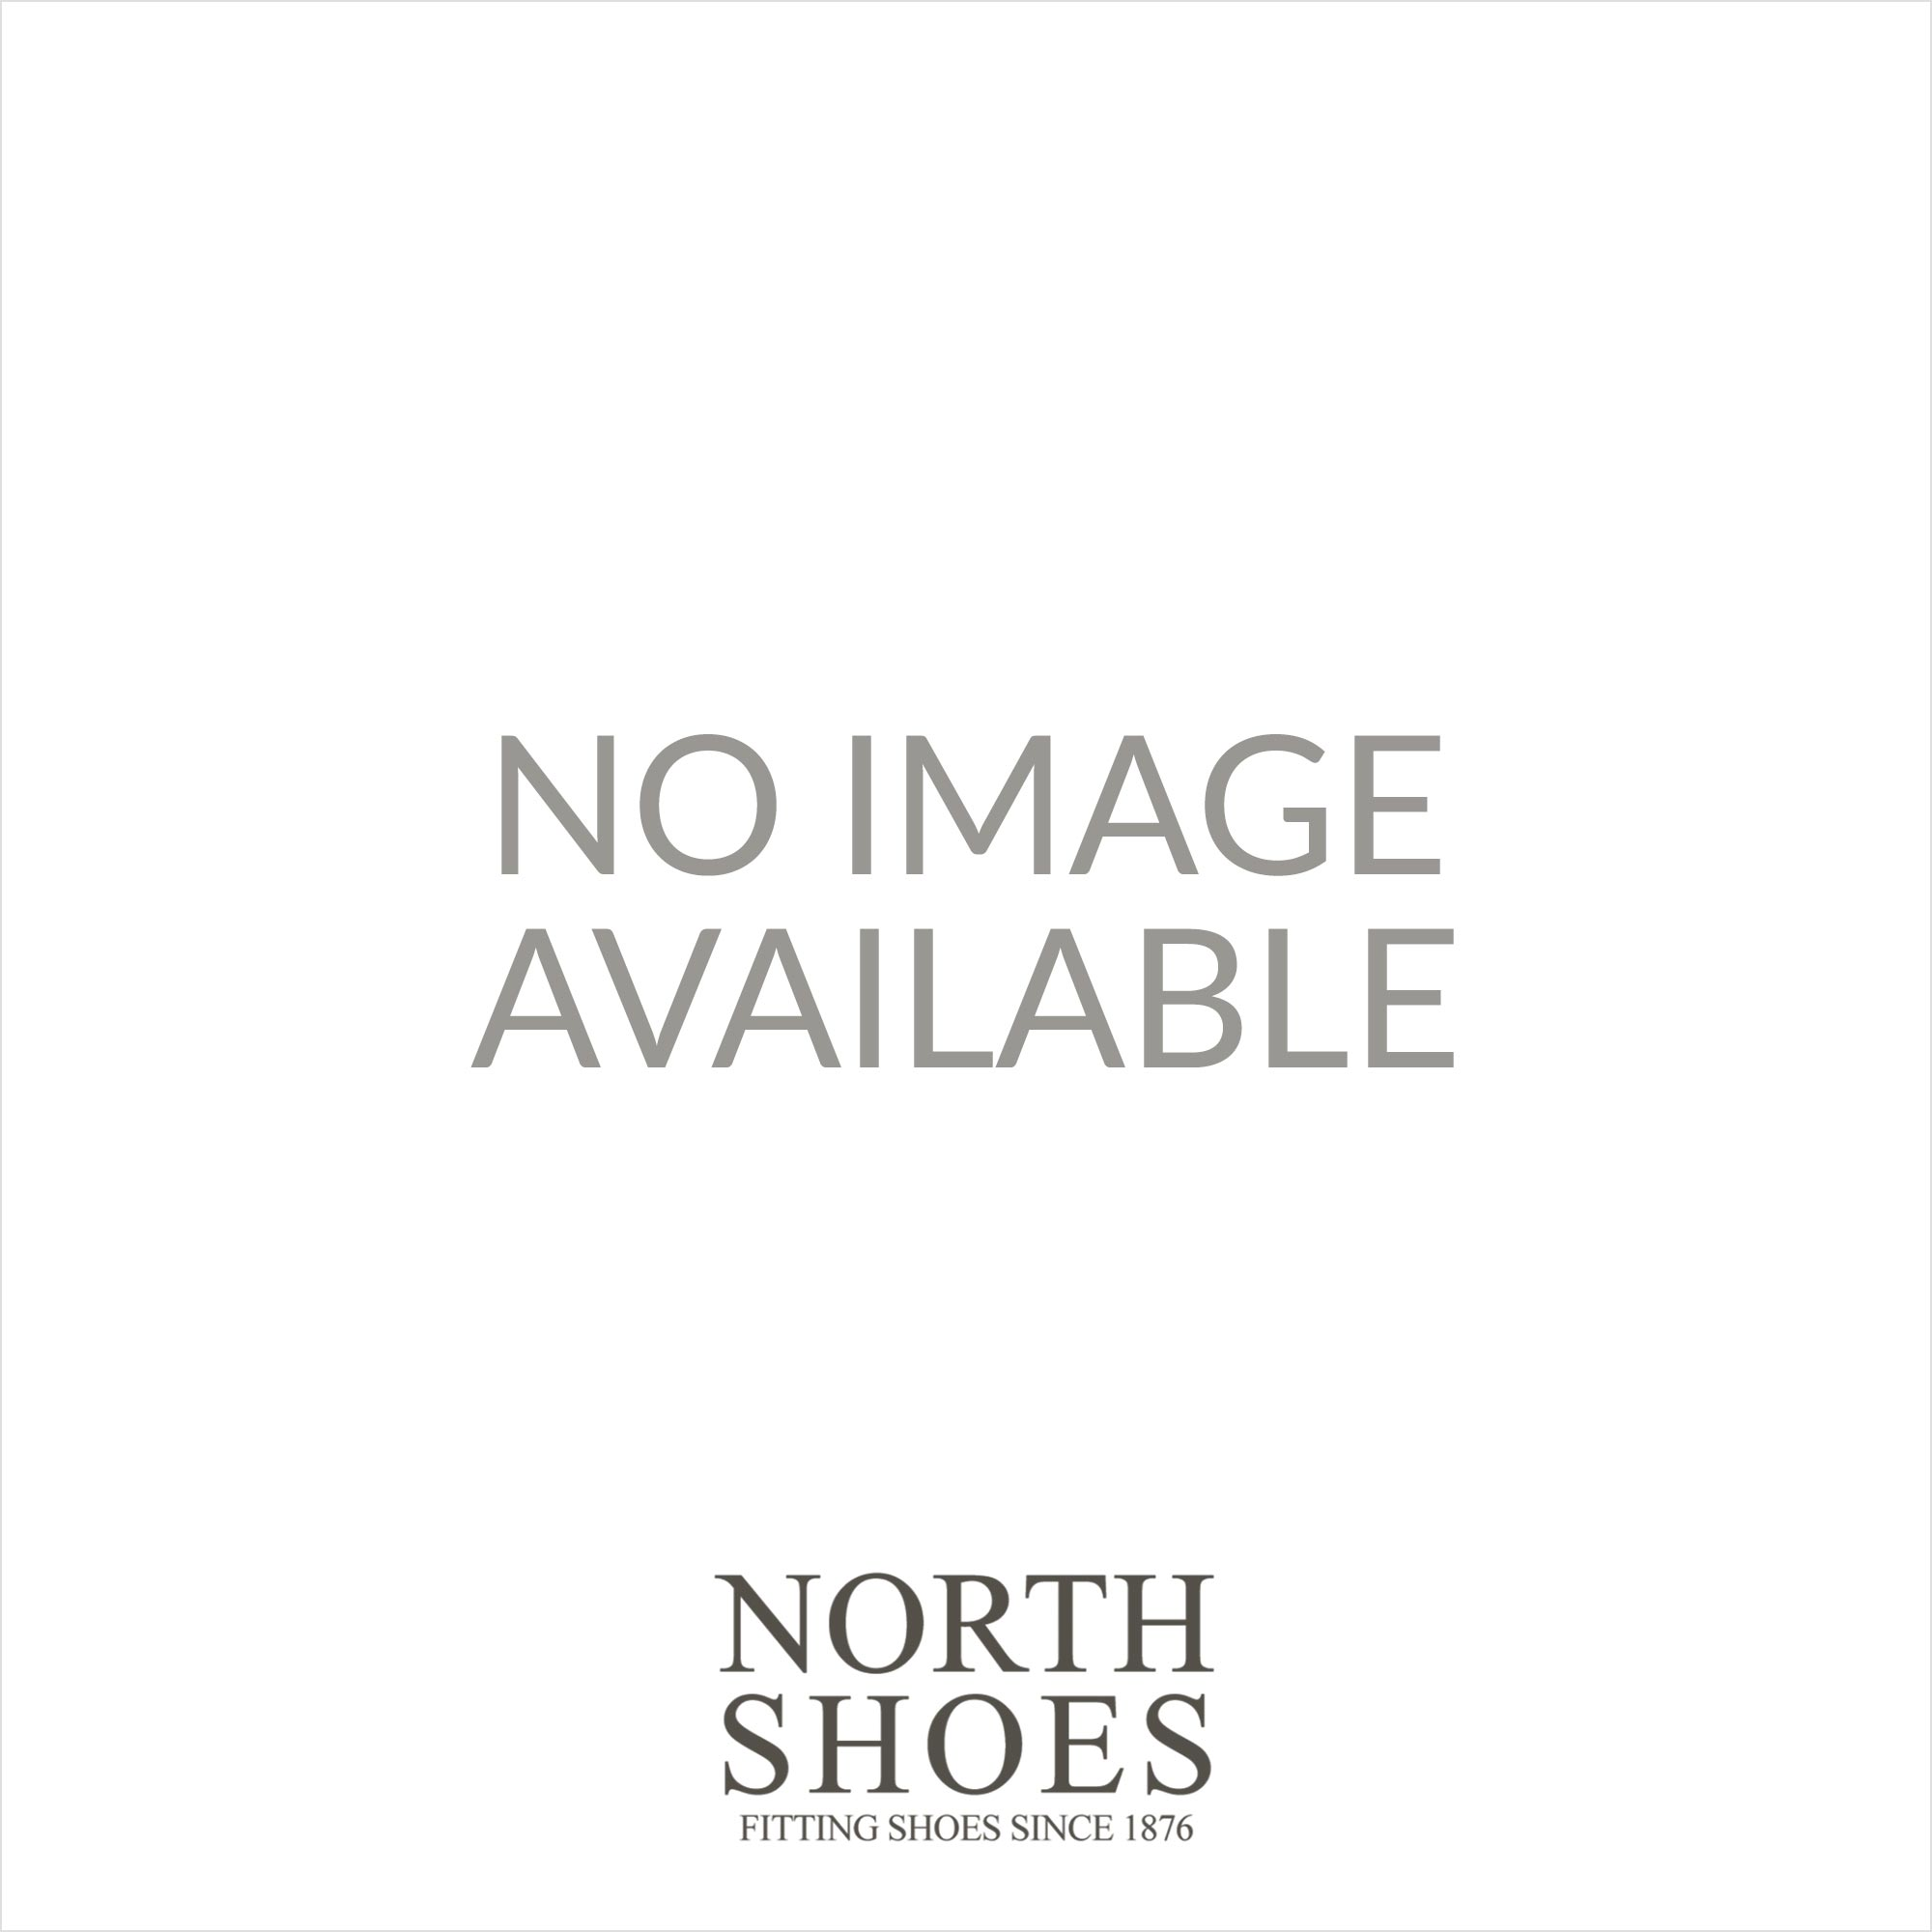 82fc4fe8bf34 Clarks Little Mia Silver Leather Butterfly Girls Pre Walker Mary Jane Shoe  - Clarks from North Shoes UK